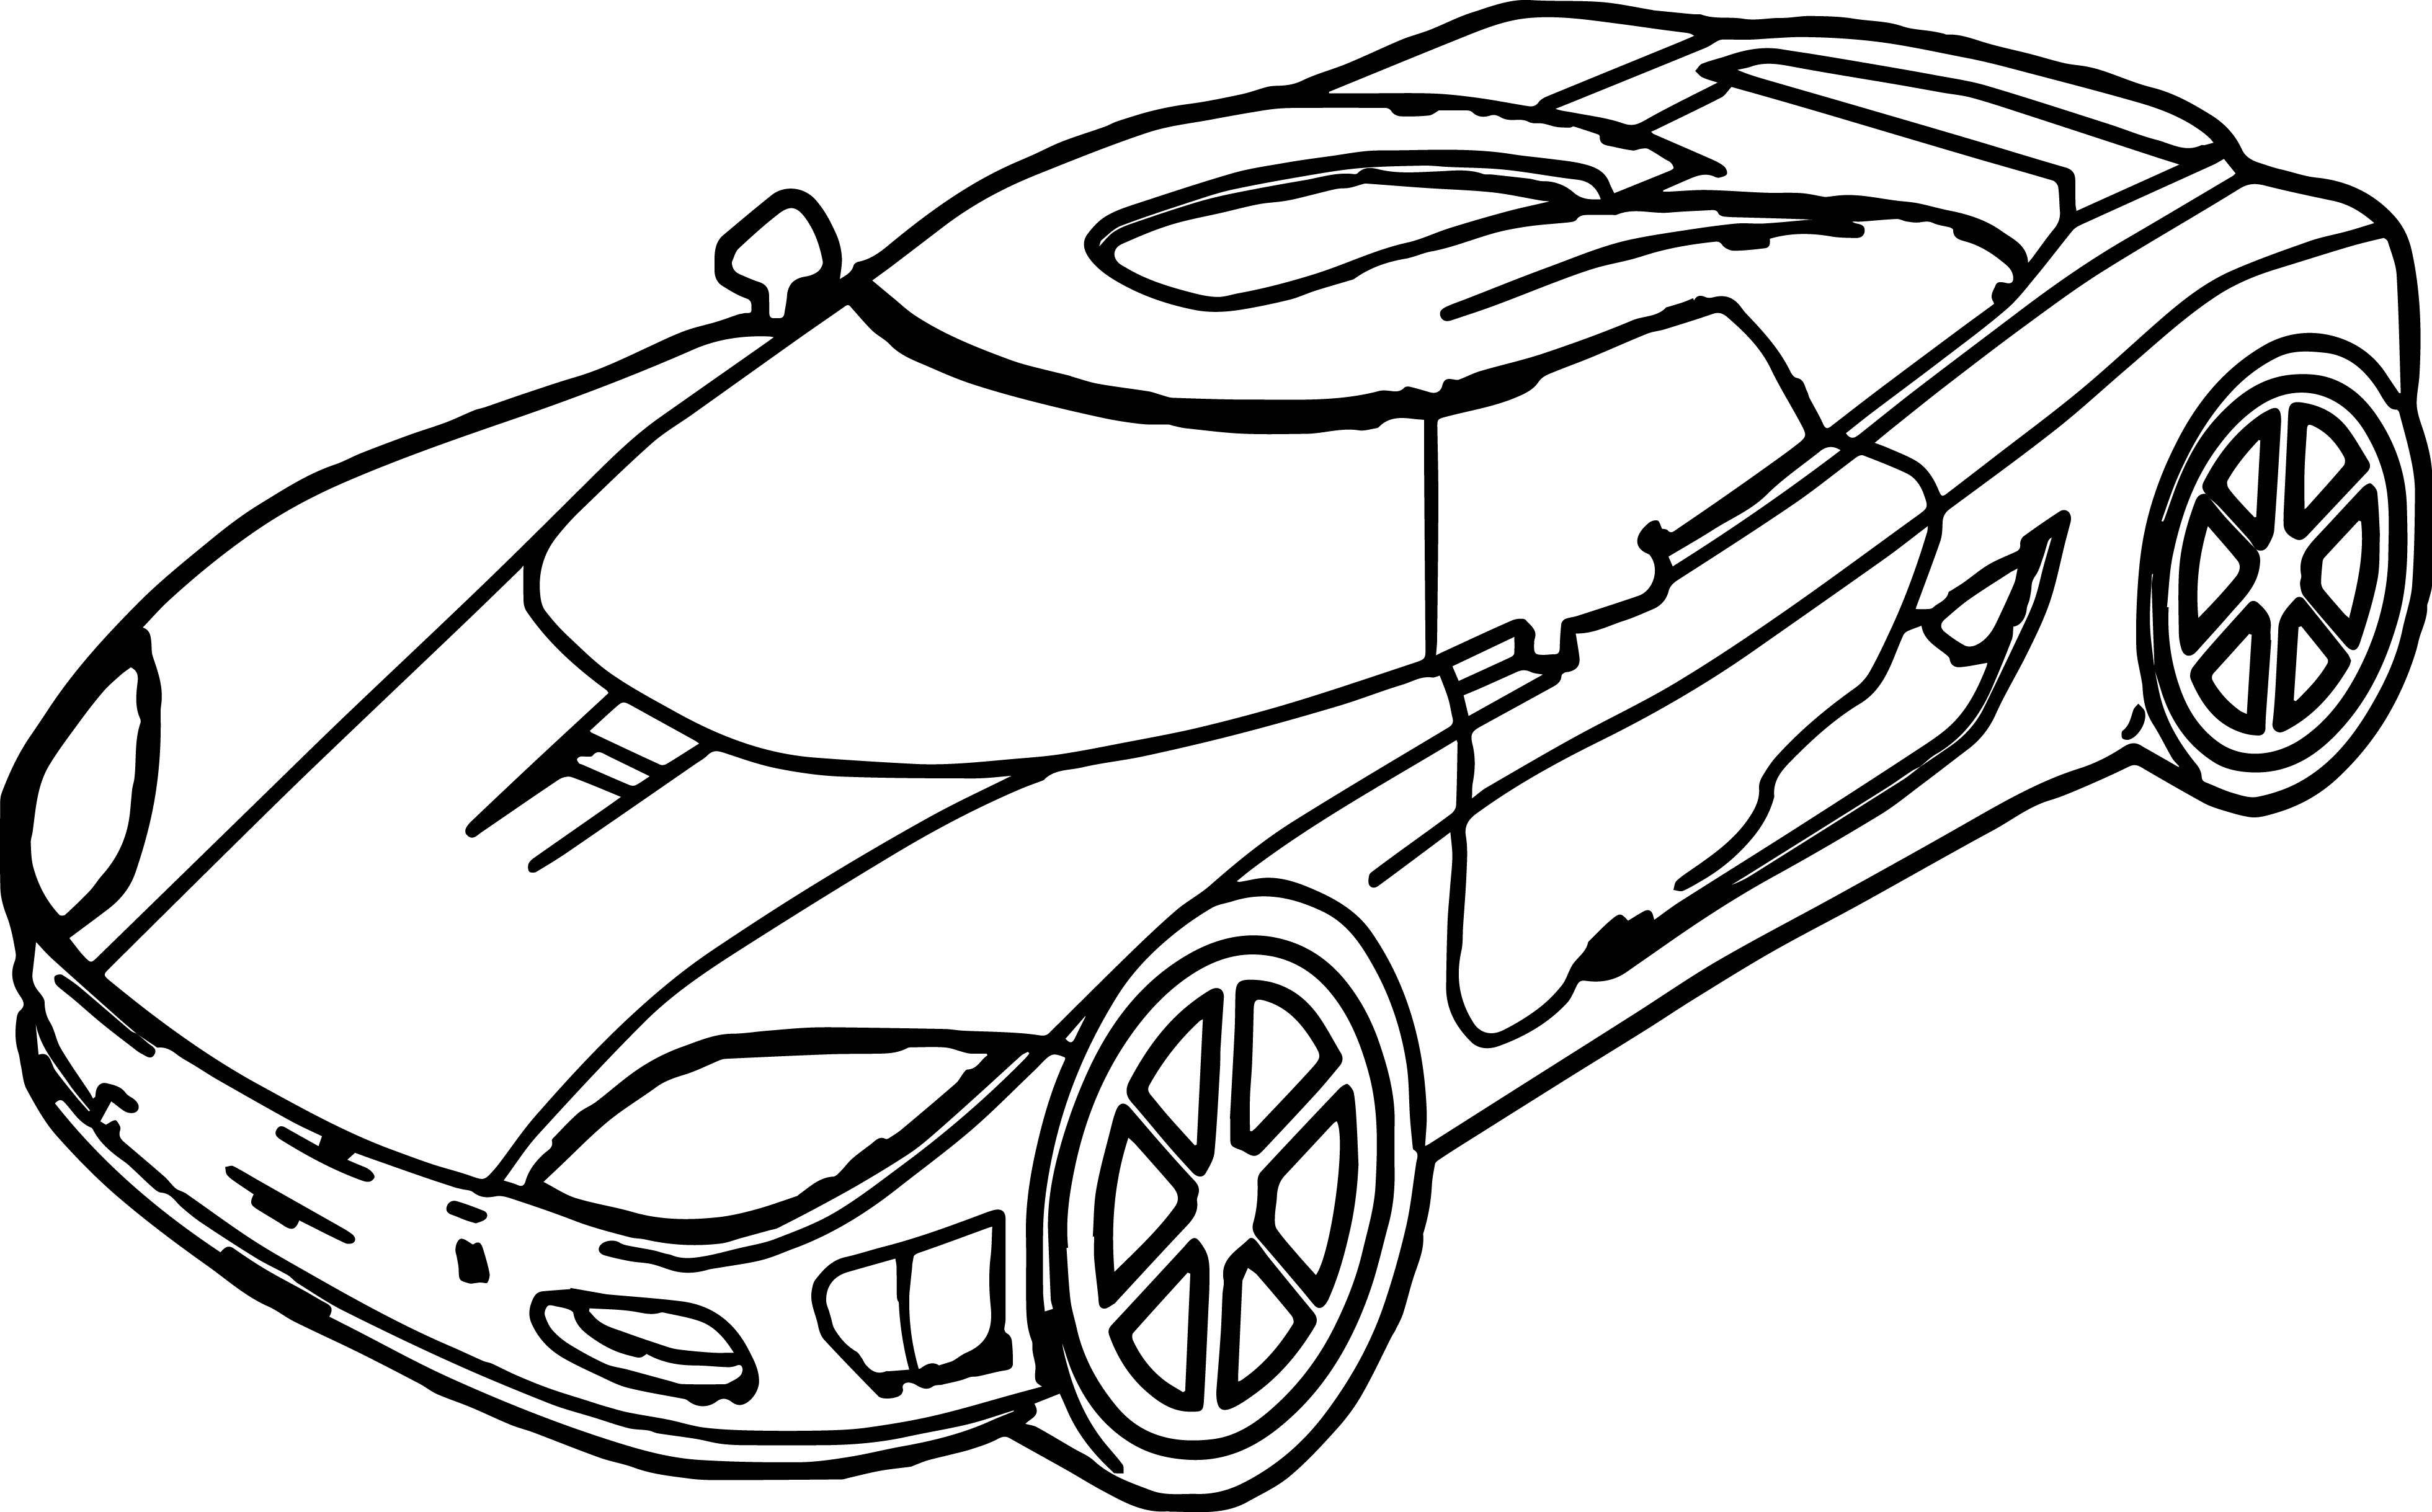 car coloring pages free download best car coloring pages on. Black Bedroom Furniture Sets. Home Design Ideas